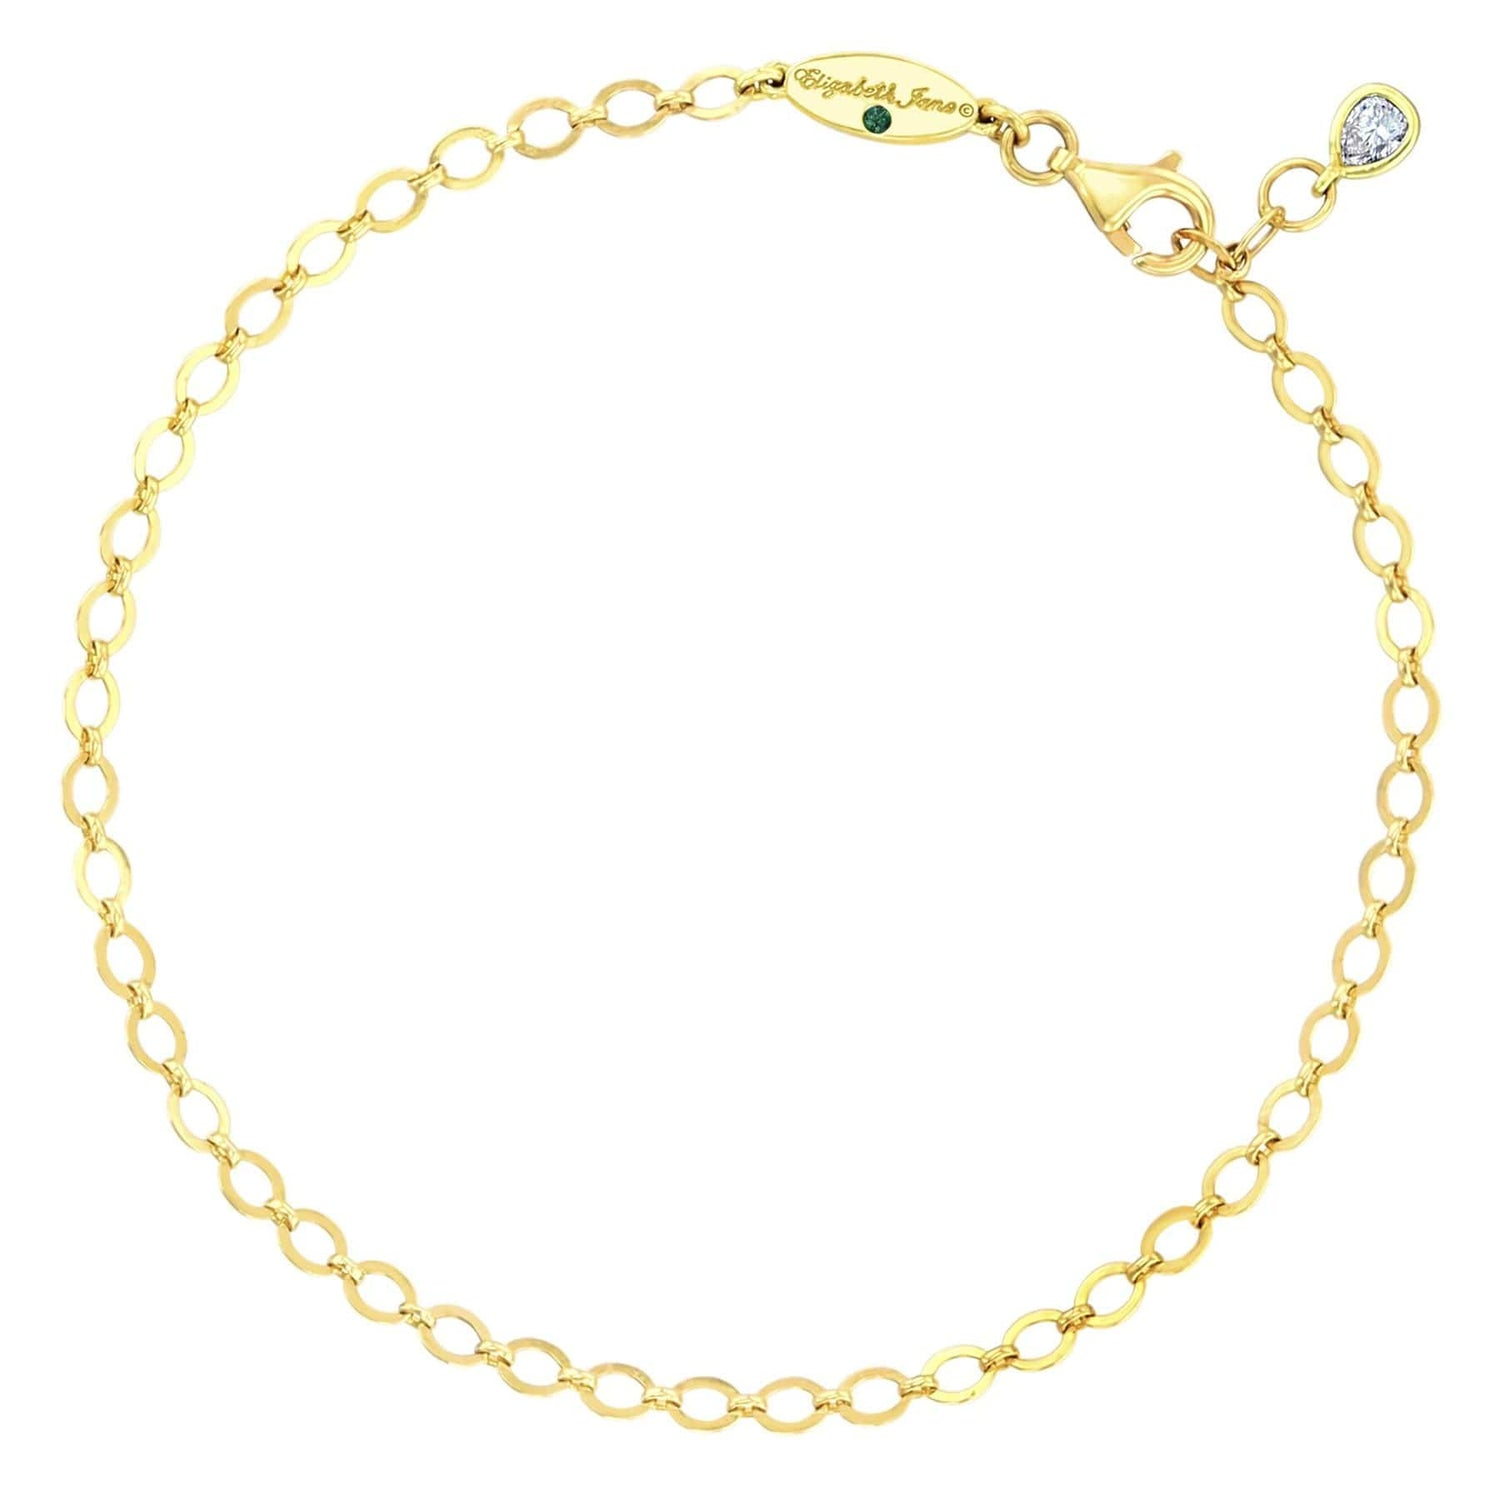 Flat Cable Link Chain Bracelet With Diamond Charm